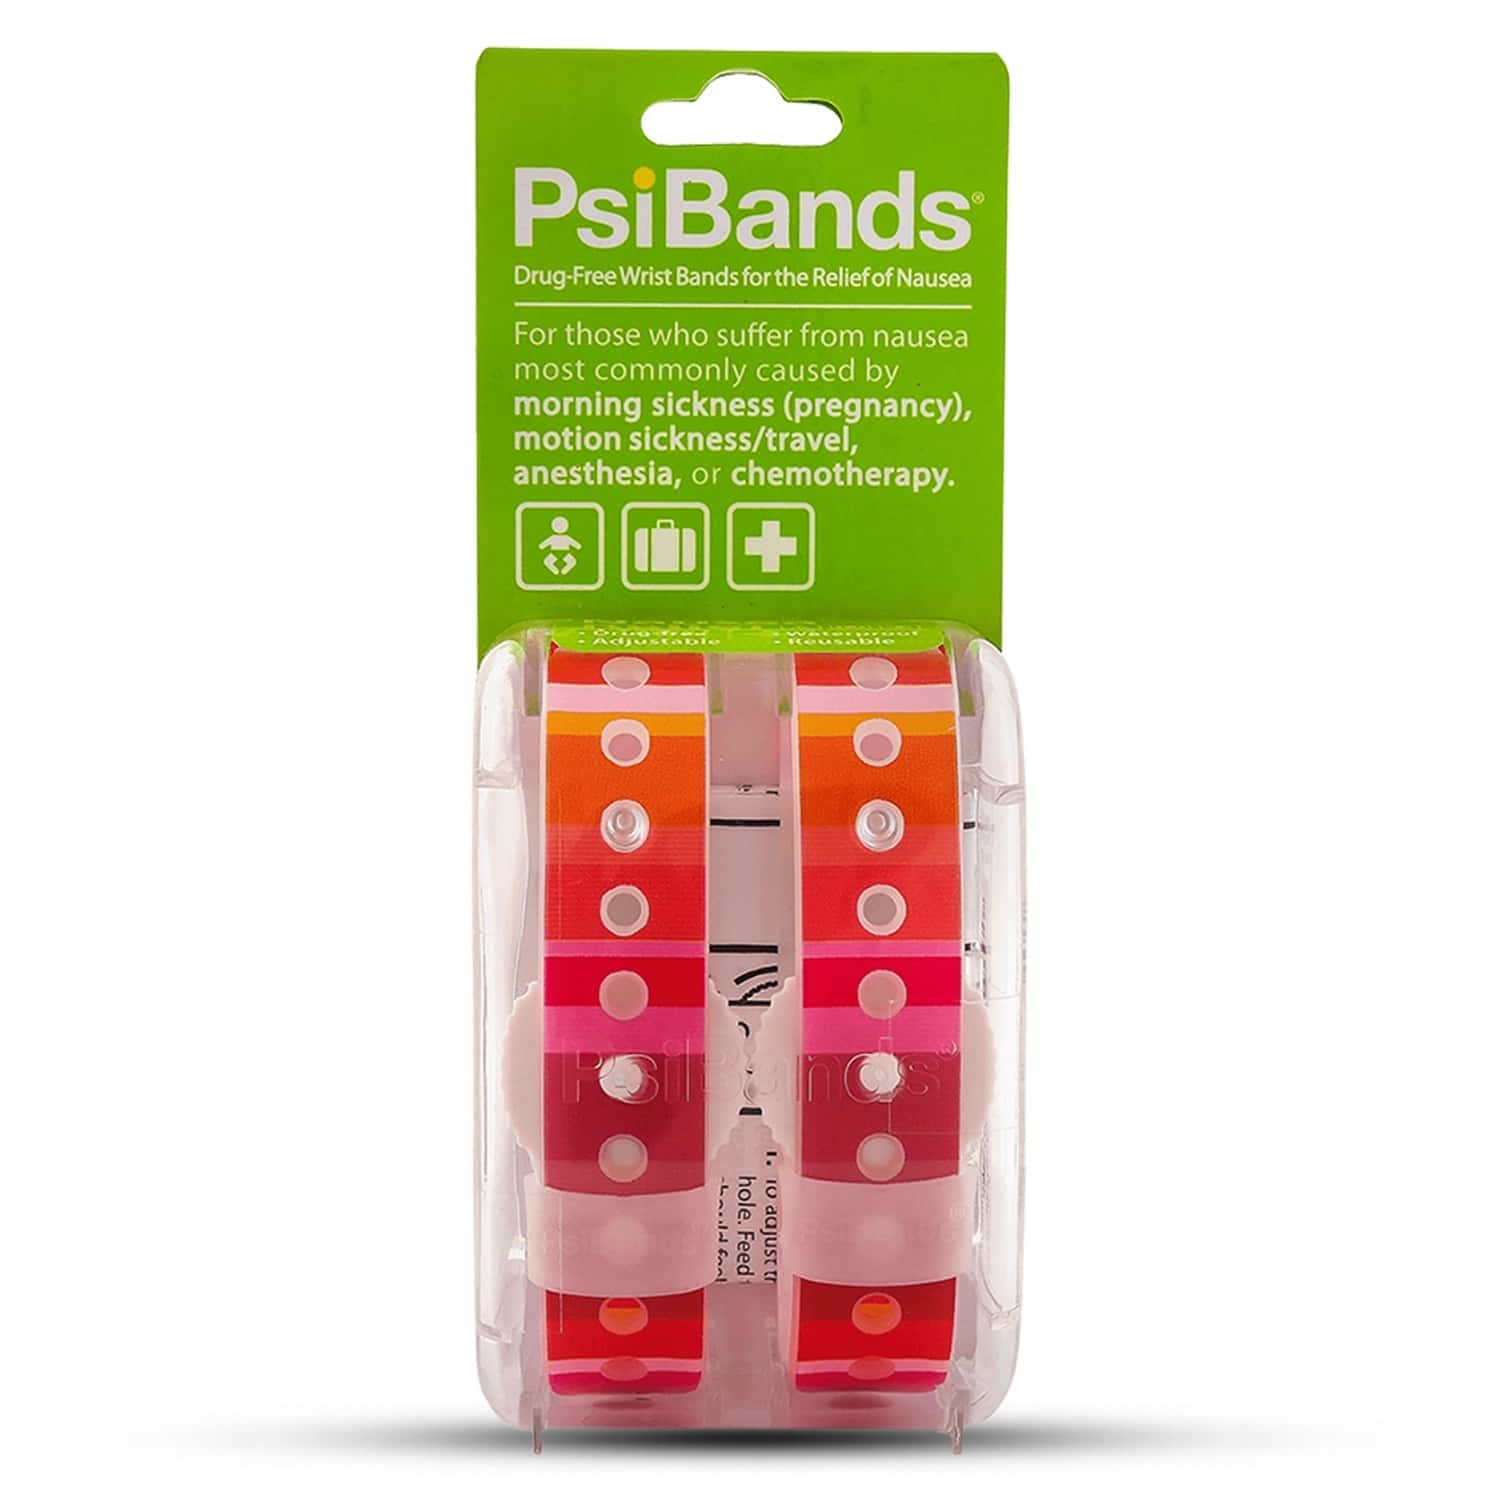 Psi Bands Anti Nausea Wrist Bands - Color Play